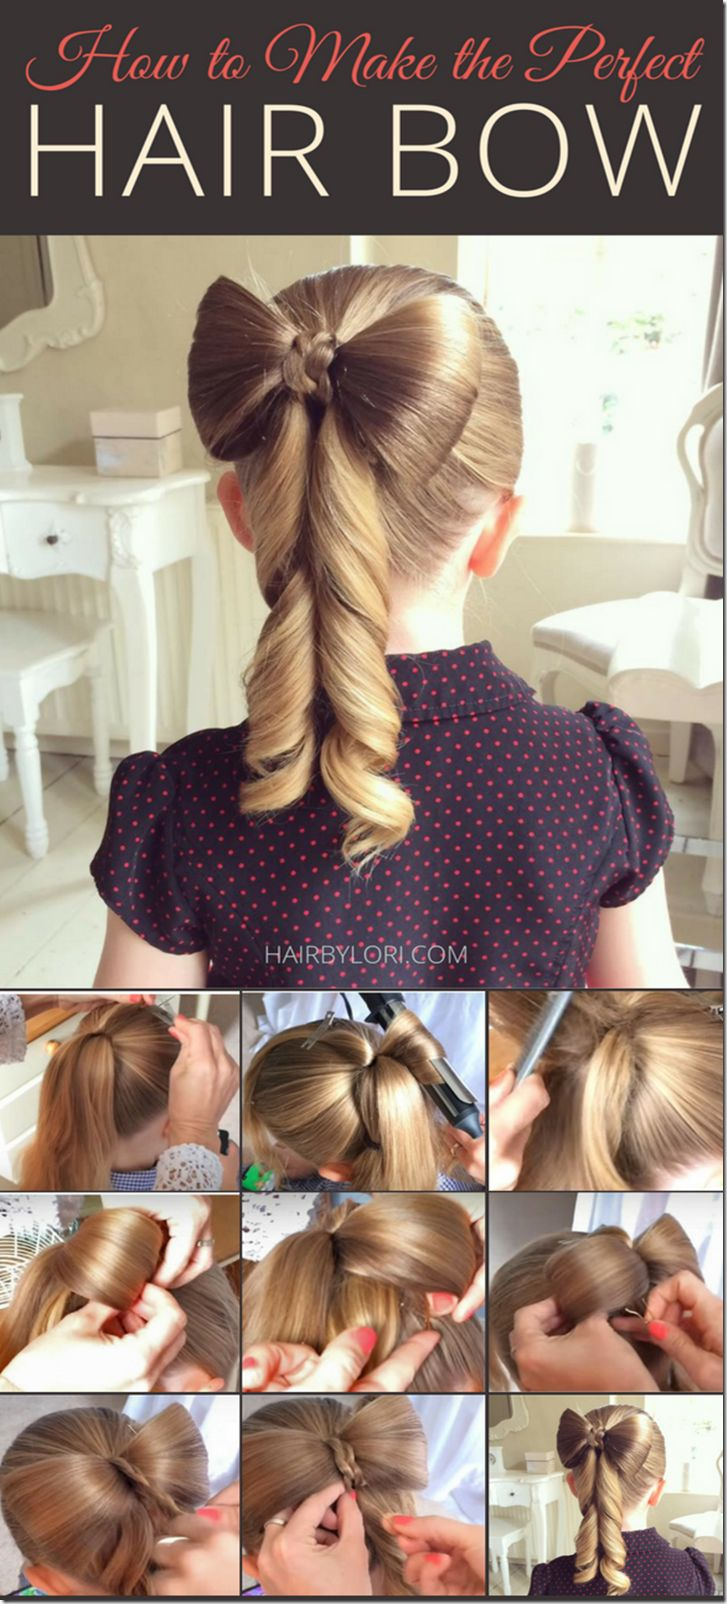 how to style hair bows best 25 bow hairstyles ideas on hair bow 5268 | 5ae578e423a15260811e1334a5ea4253 hair bow hairstyles bow hairstyle for kids